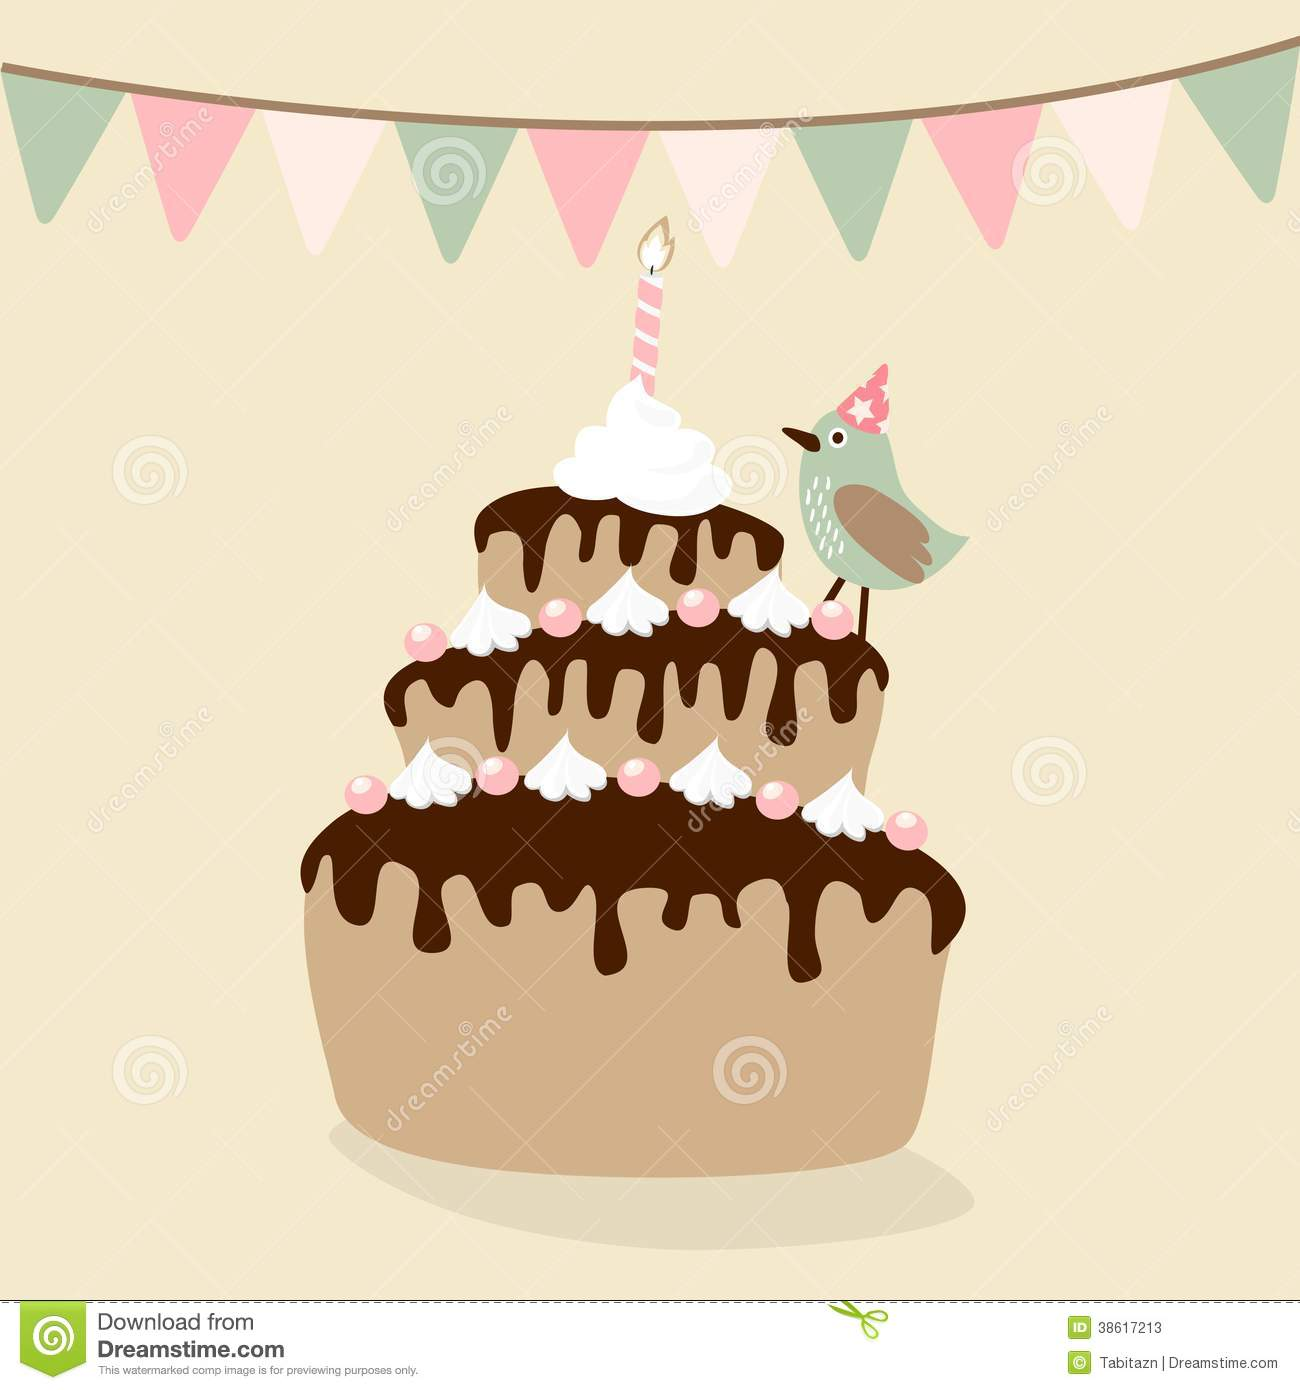 Cute retro birthday card invitation with cake stock illustration download comp stopboris Gallery